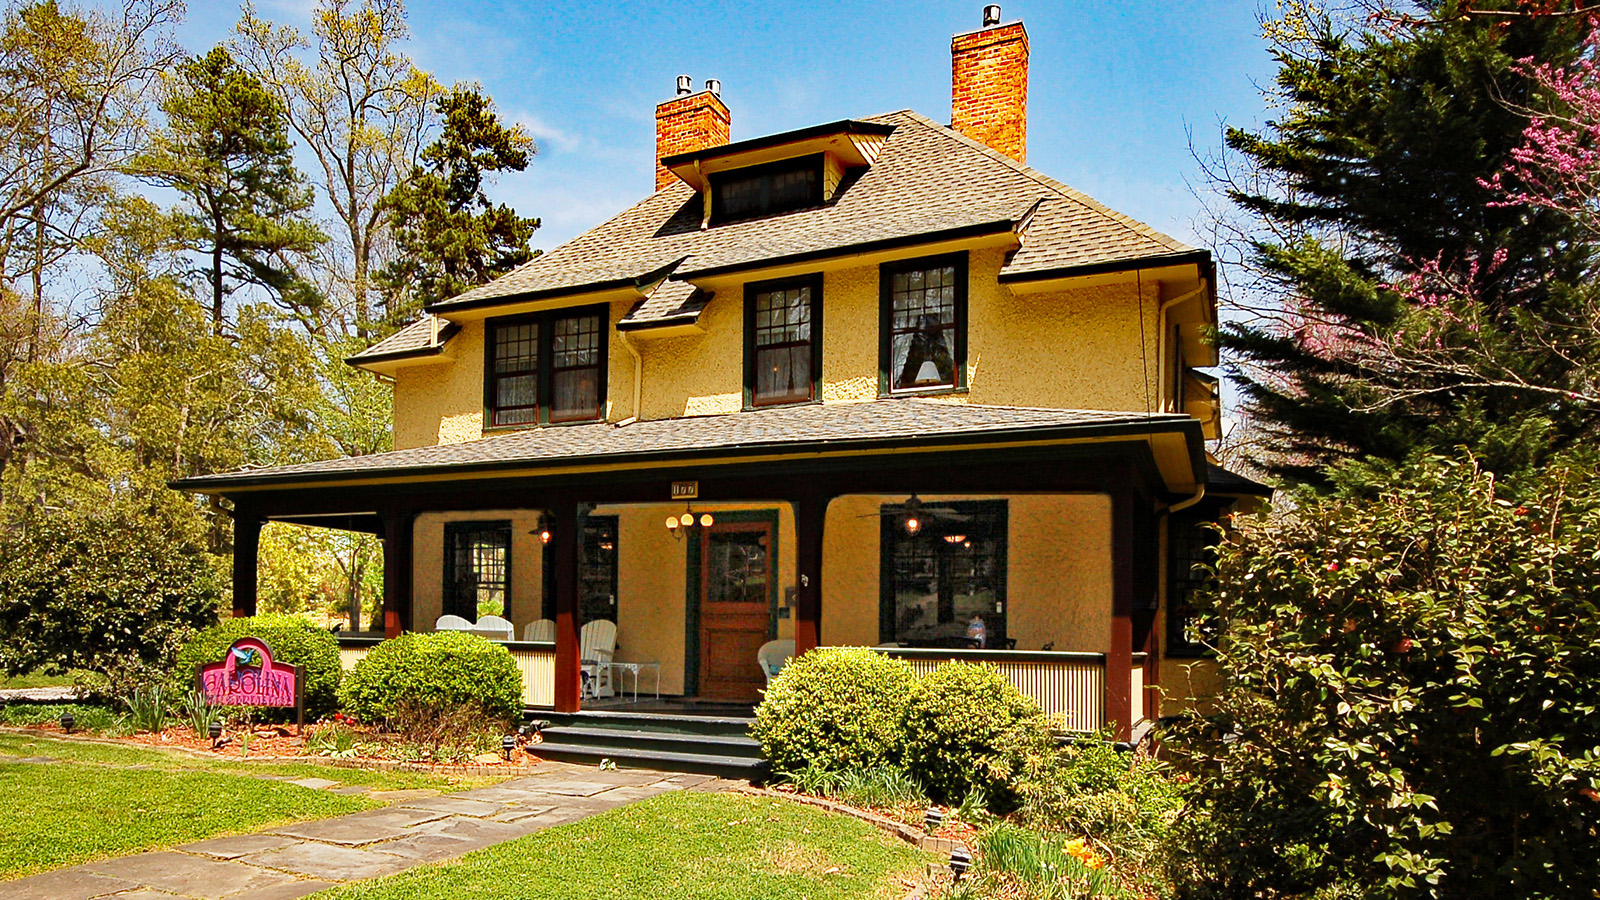 Carlina Bed & Breakfast - Asheville Bed and Breakfast Inn in Historic Montford